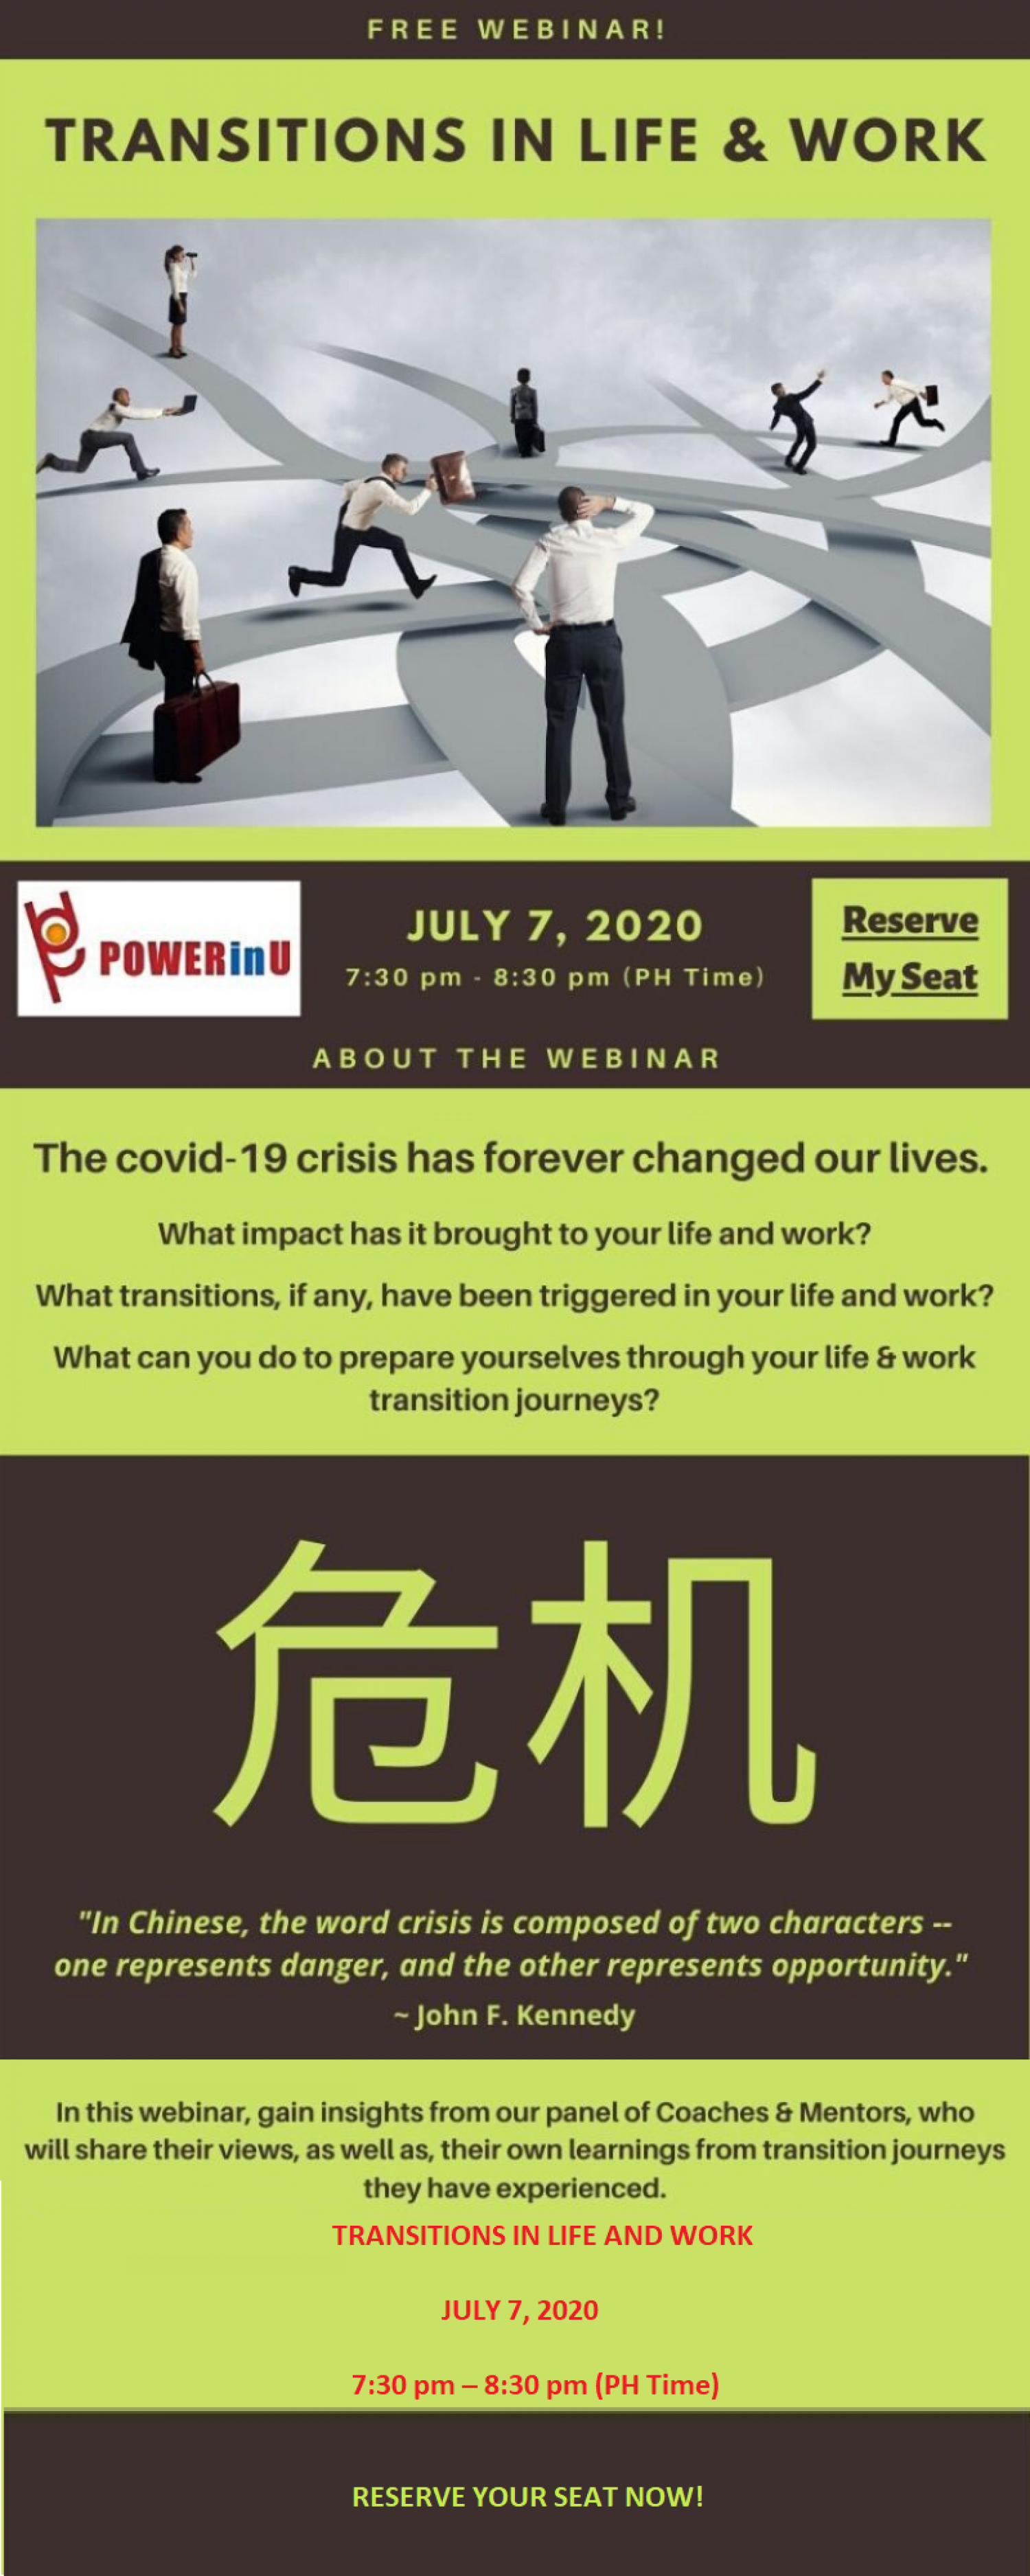 Free Webinar on Transitions in Life & Work Infographic